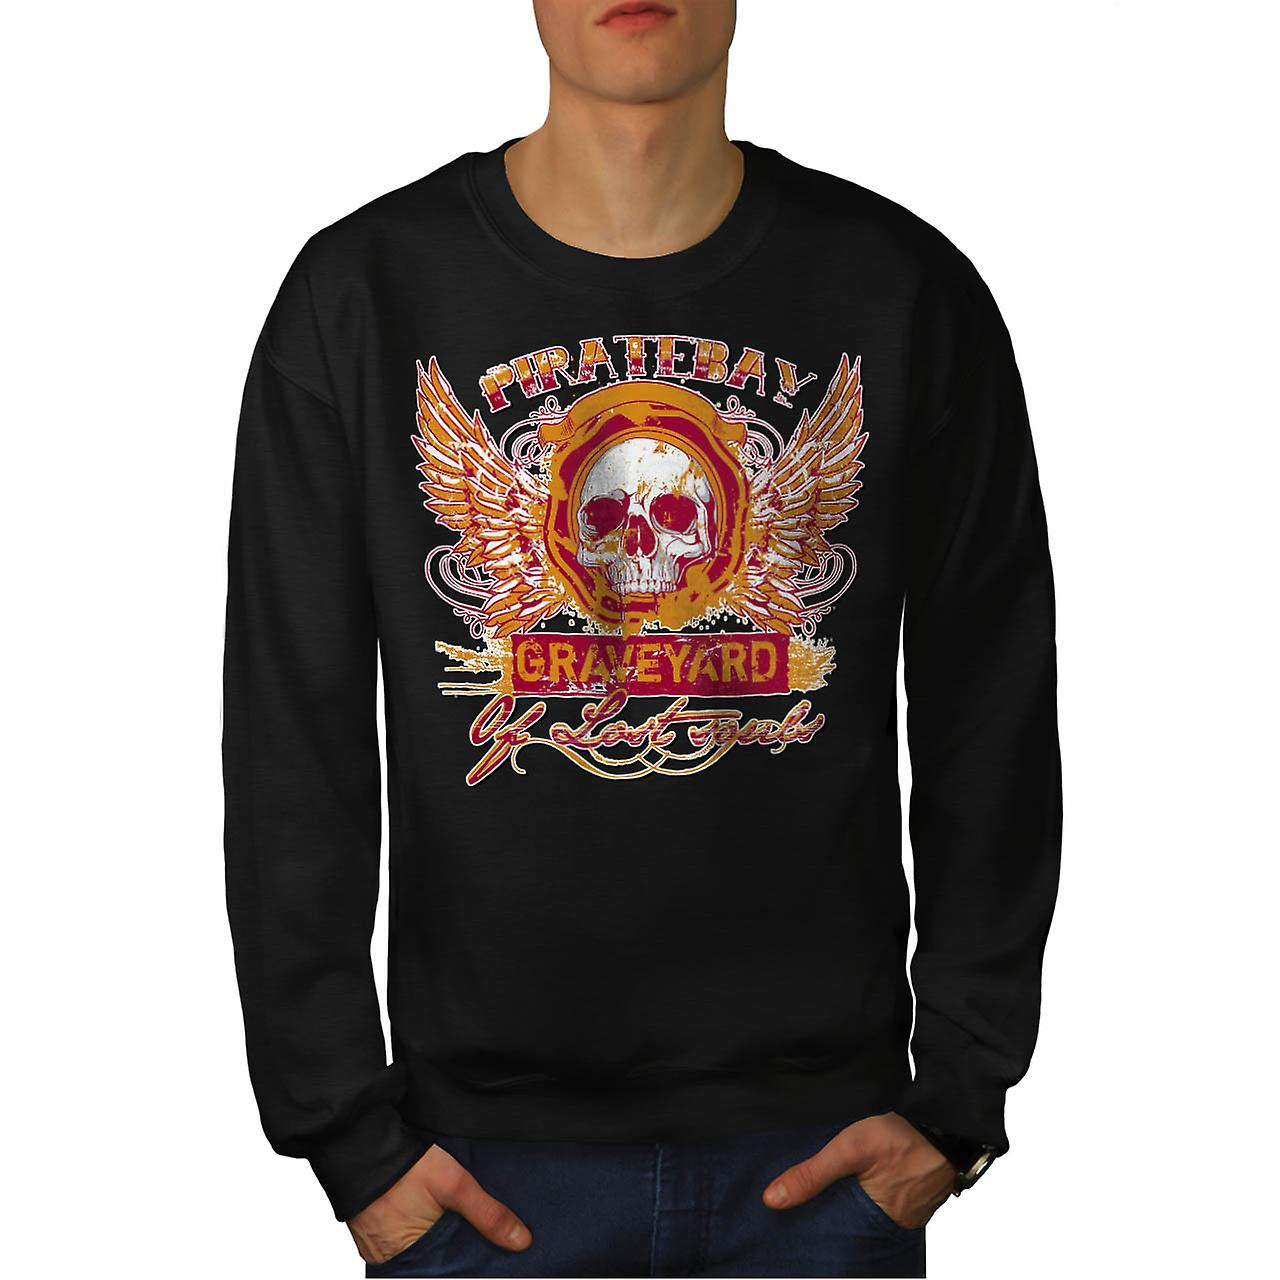 Pirate Bay grav Yard Lost Souls menn svart Sweatshirt | Wellcoda